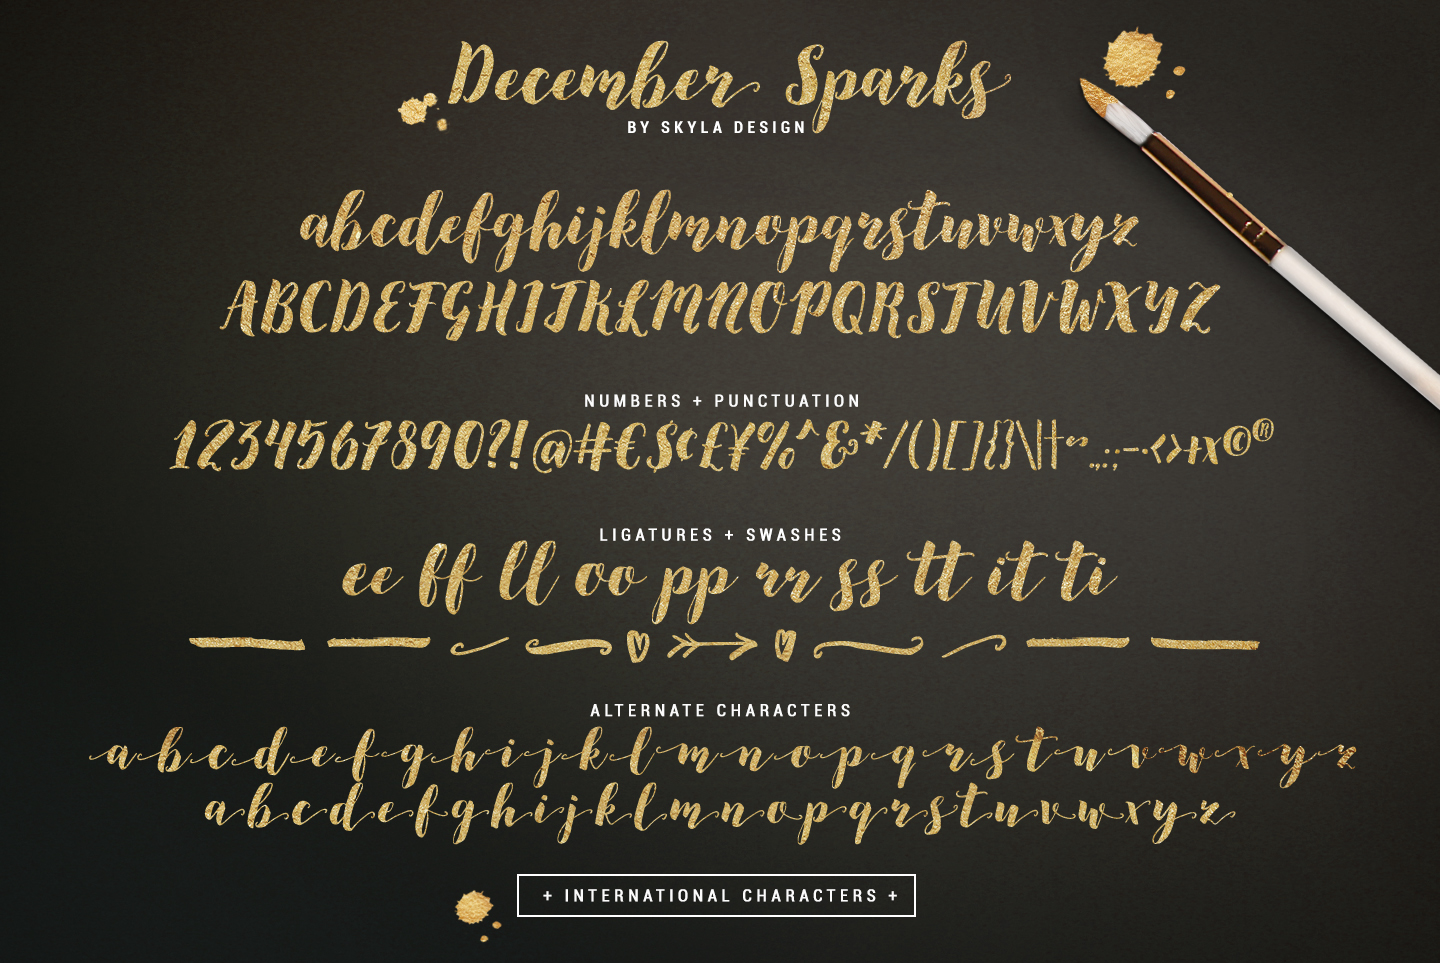 Modern brush calligraphy font, December Sparks example image 6